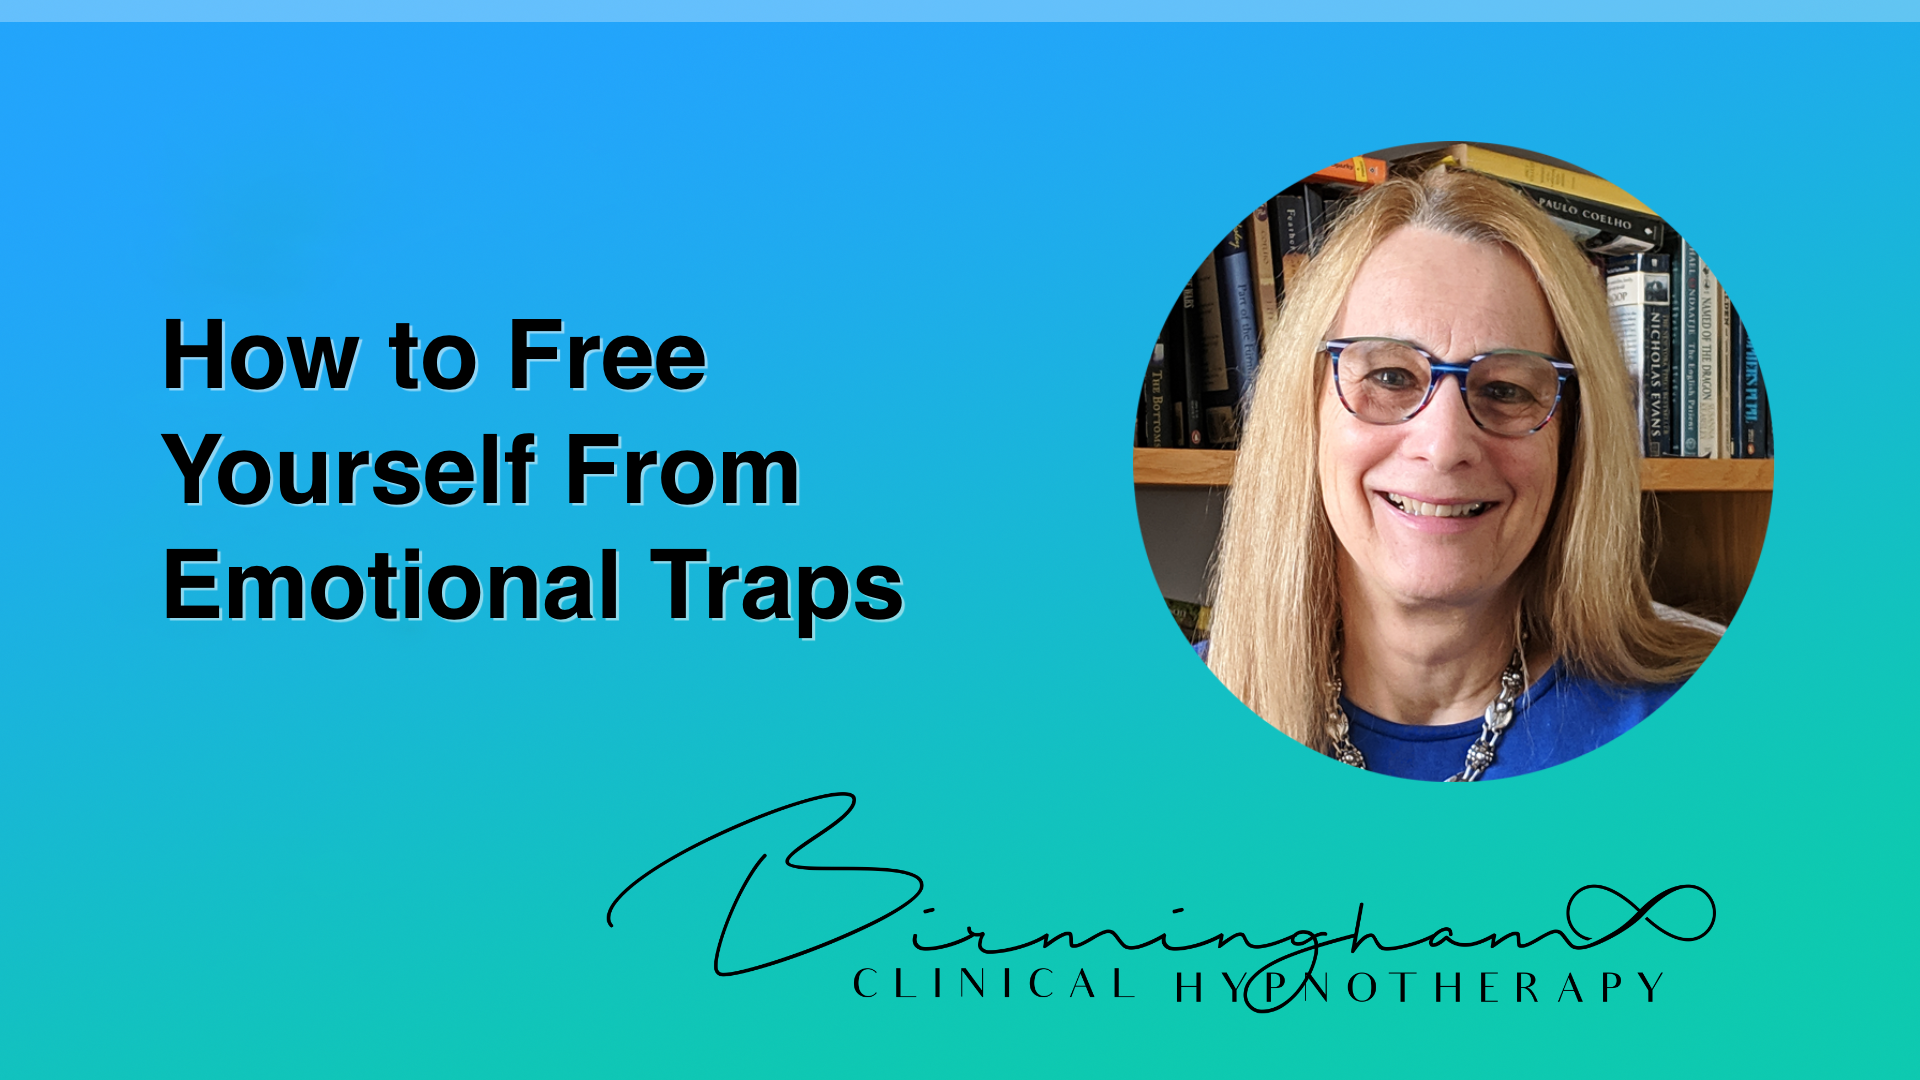 Free Yourself From Emotional Traps